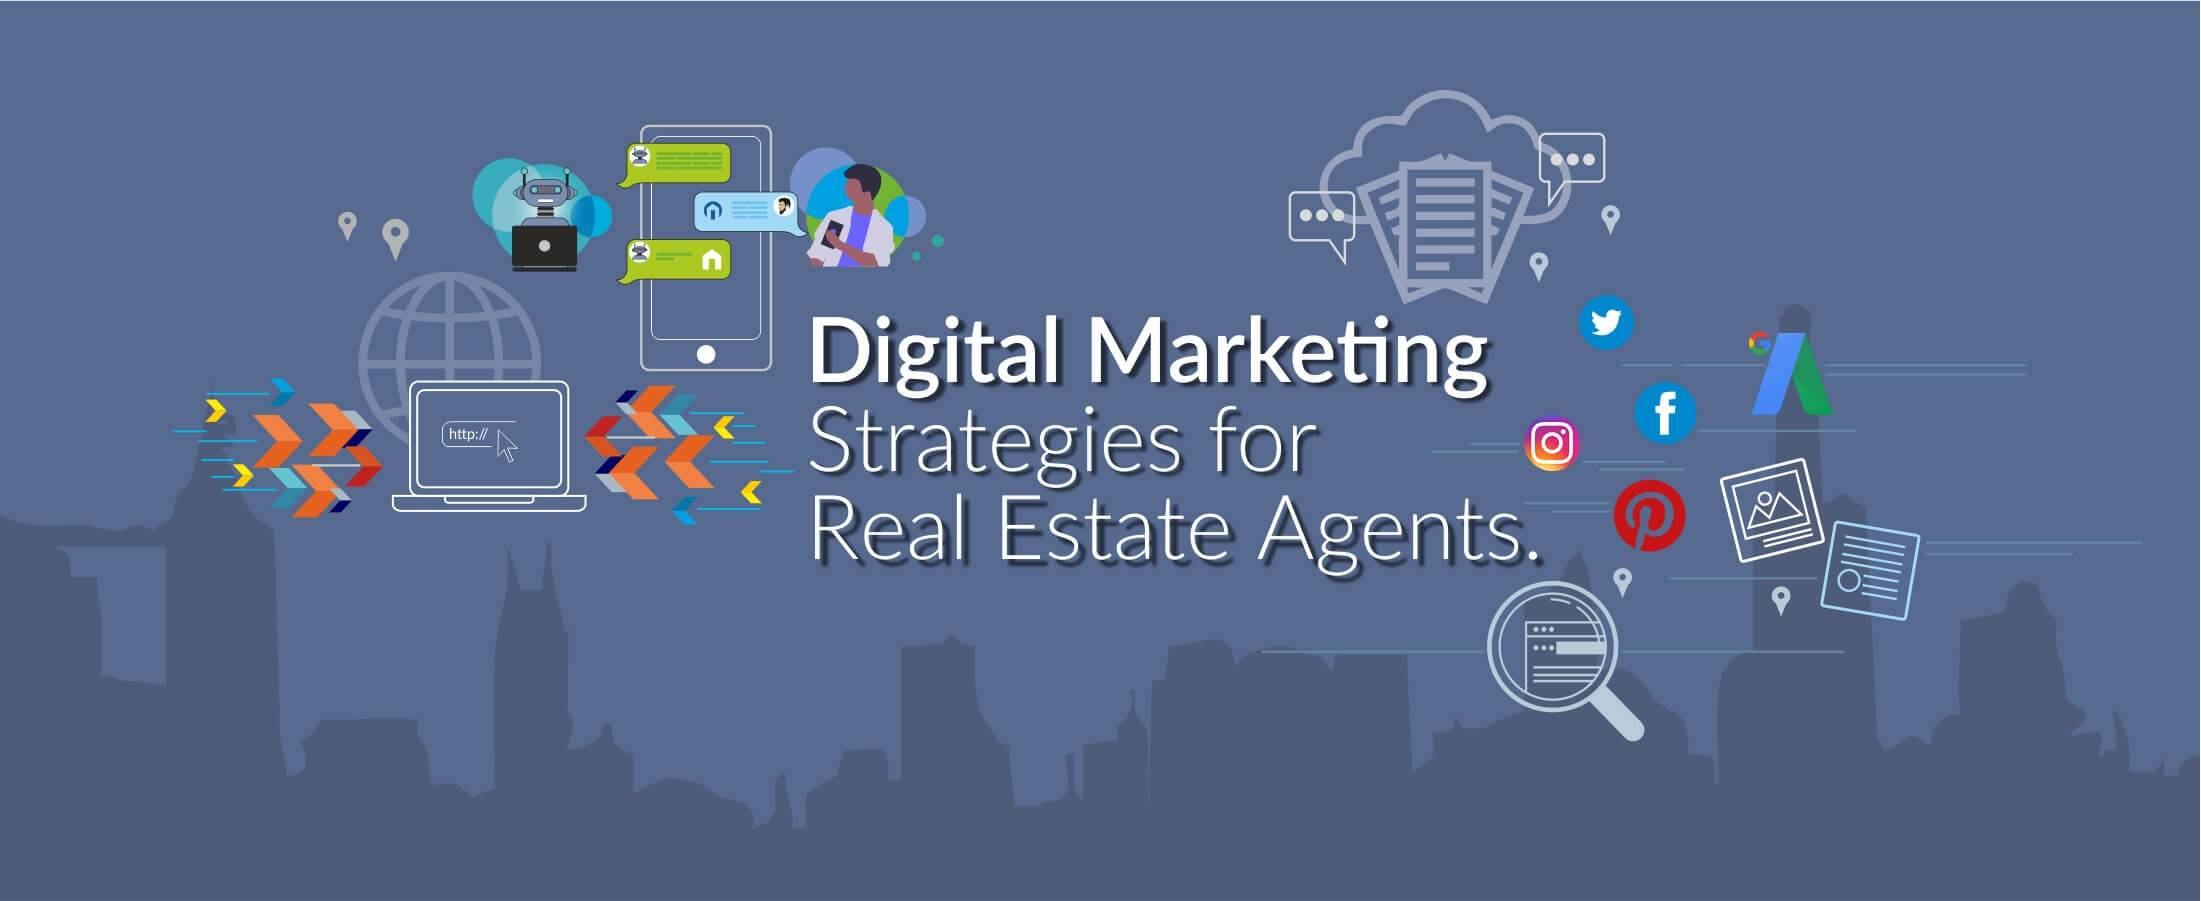 Digital Marketing Strategies for Real Estate Agents